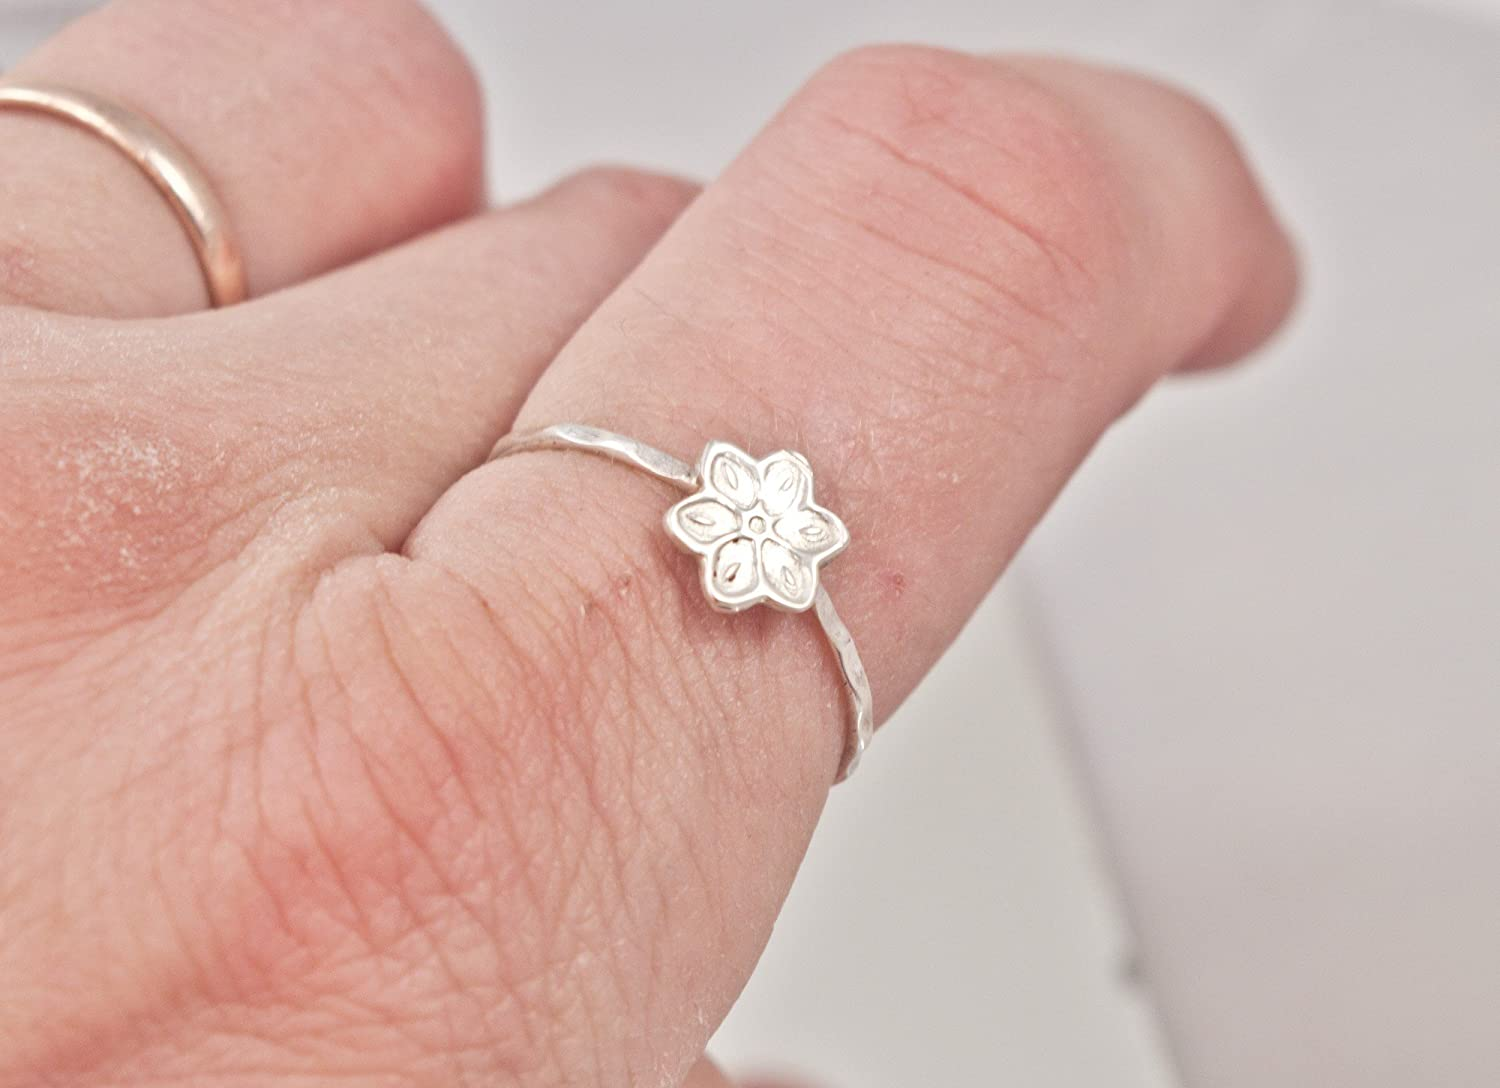 Amazon.com: Lily ring - flower ring - skinny ring - sterling silver ...